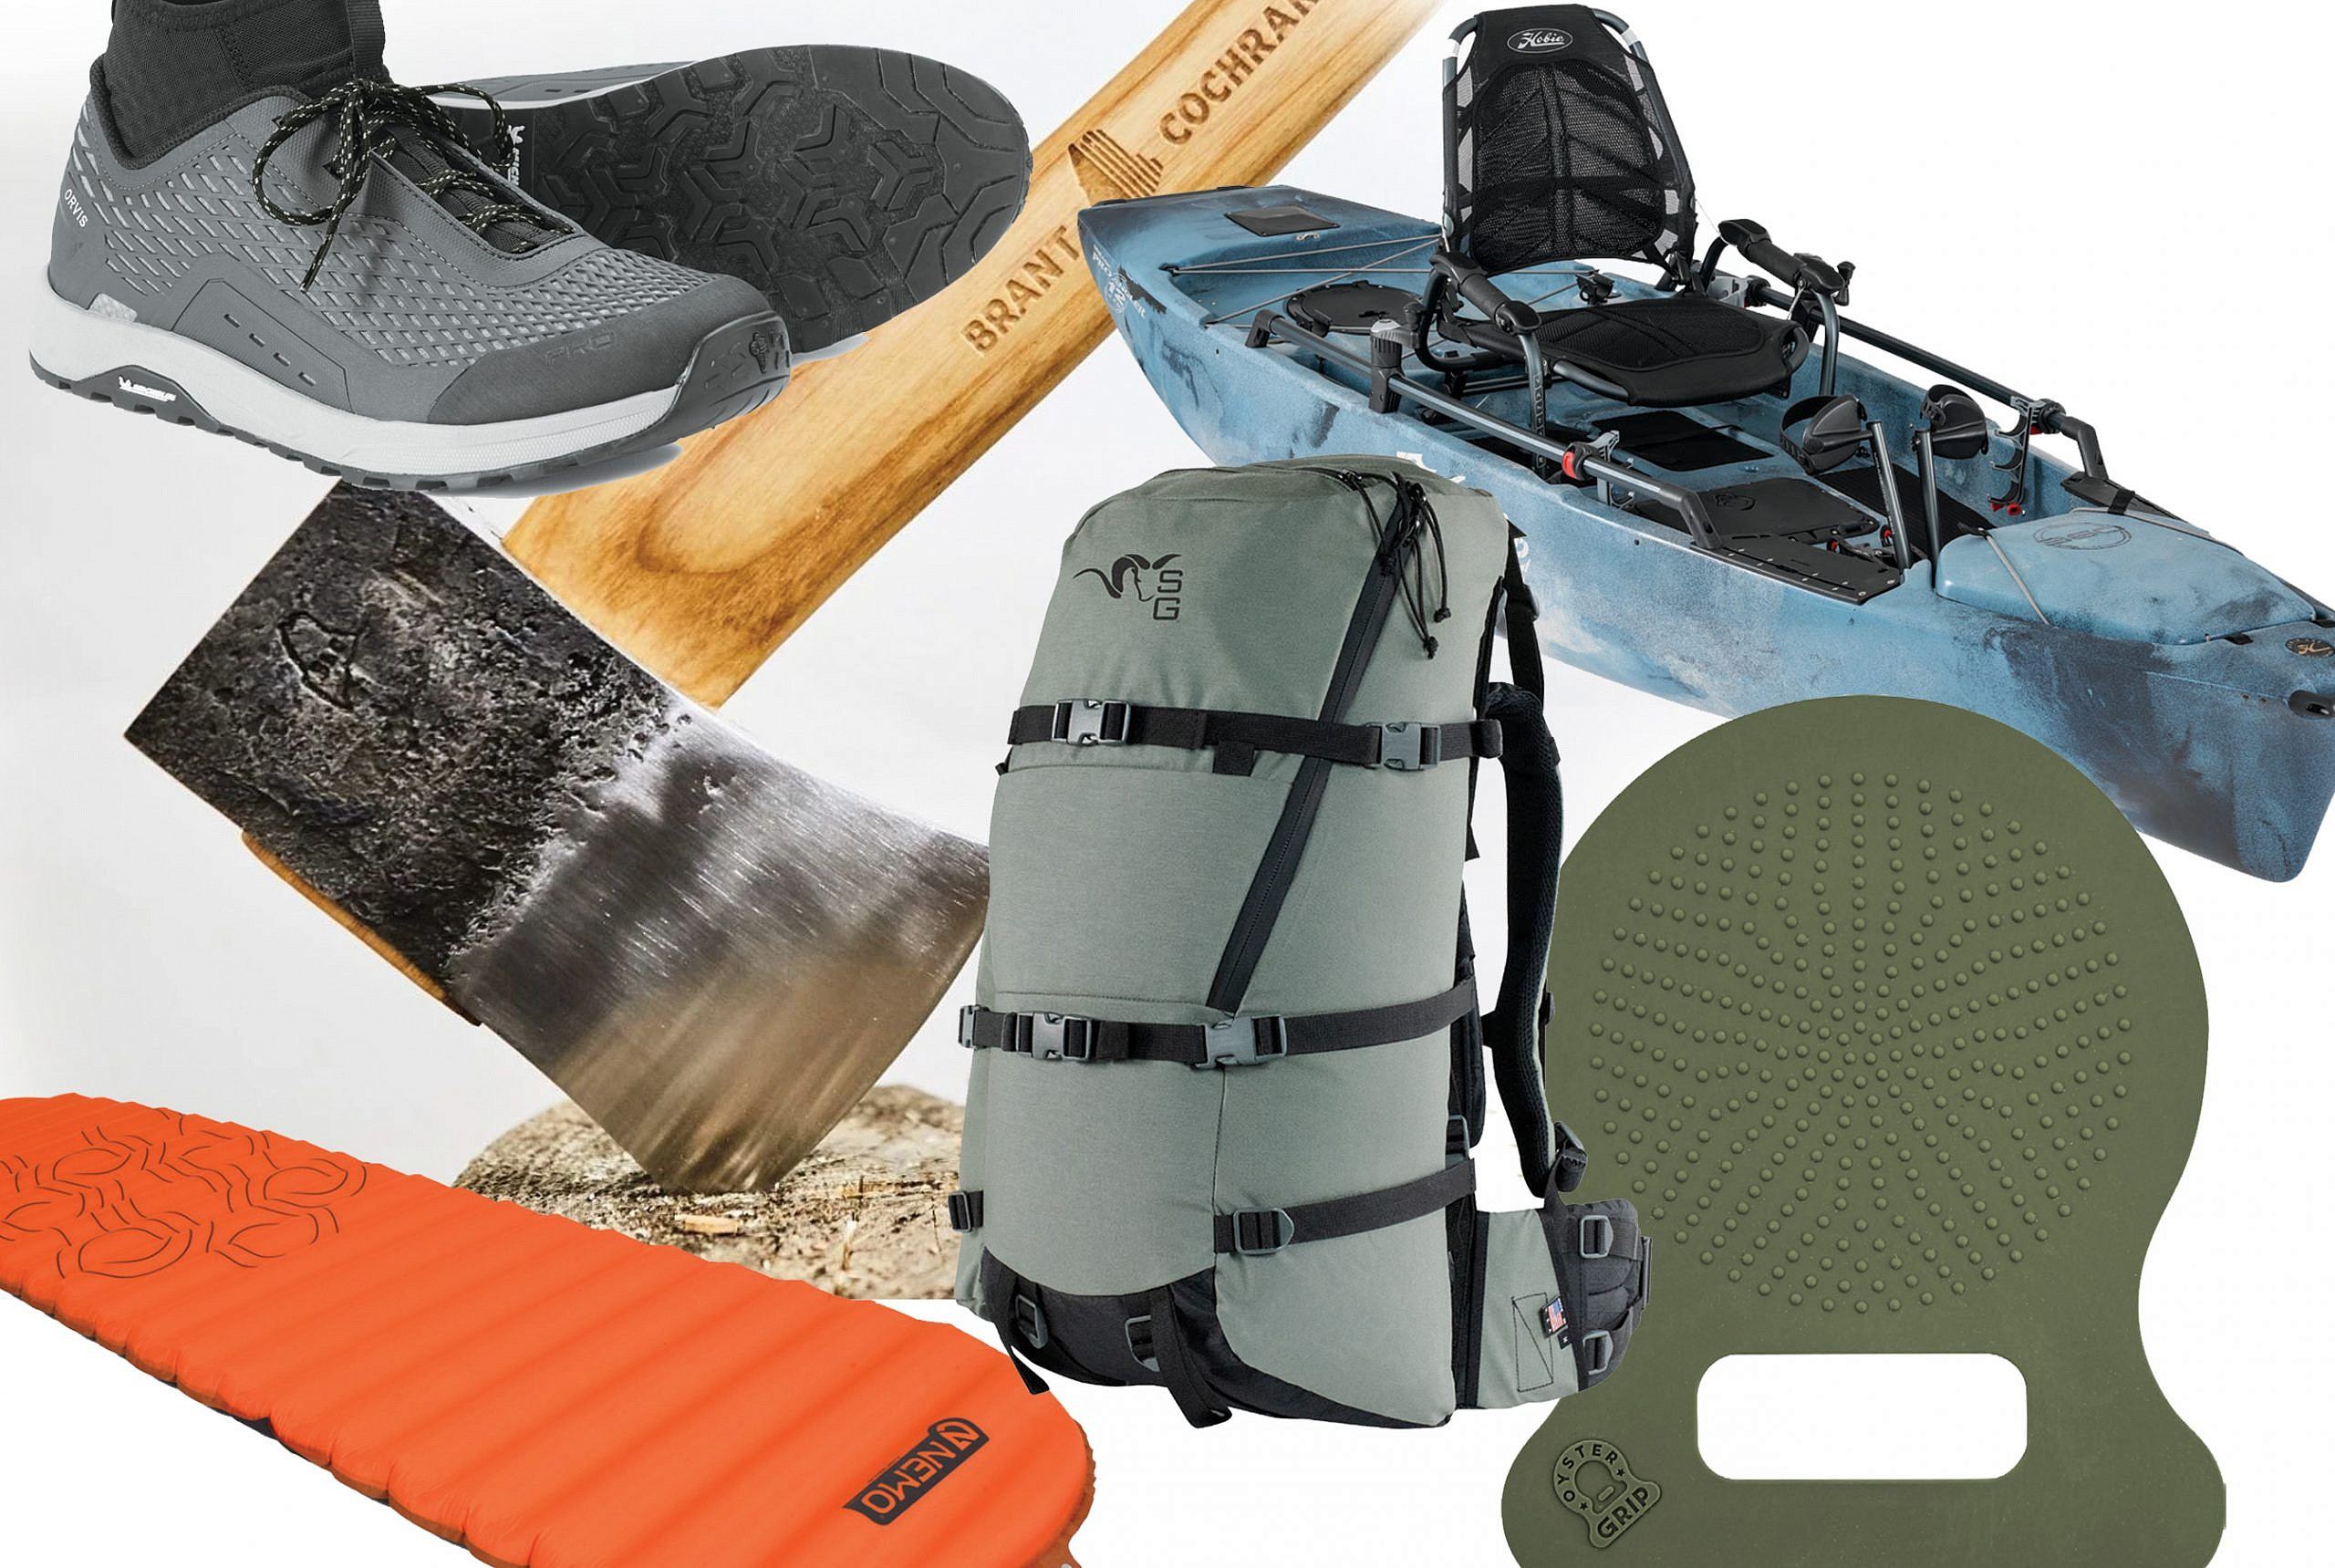 GRAY'S GEAR & LIFESTYLE: Fall 2020